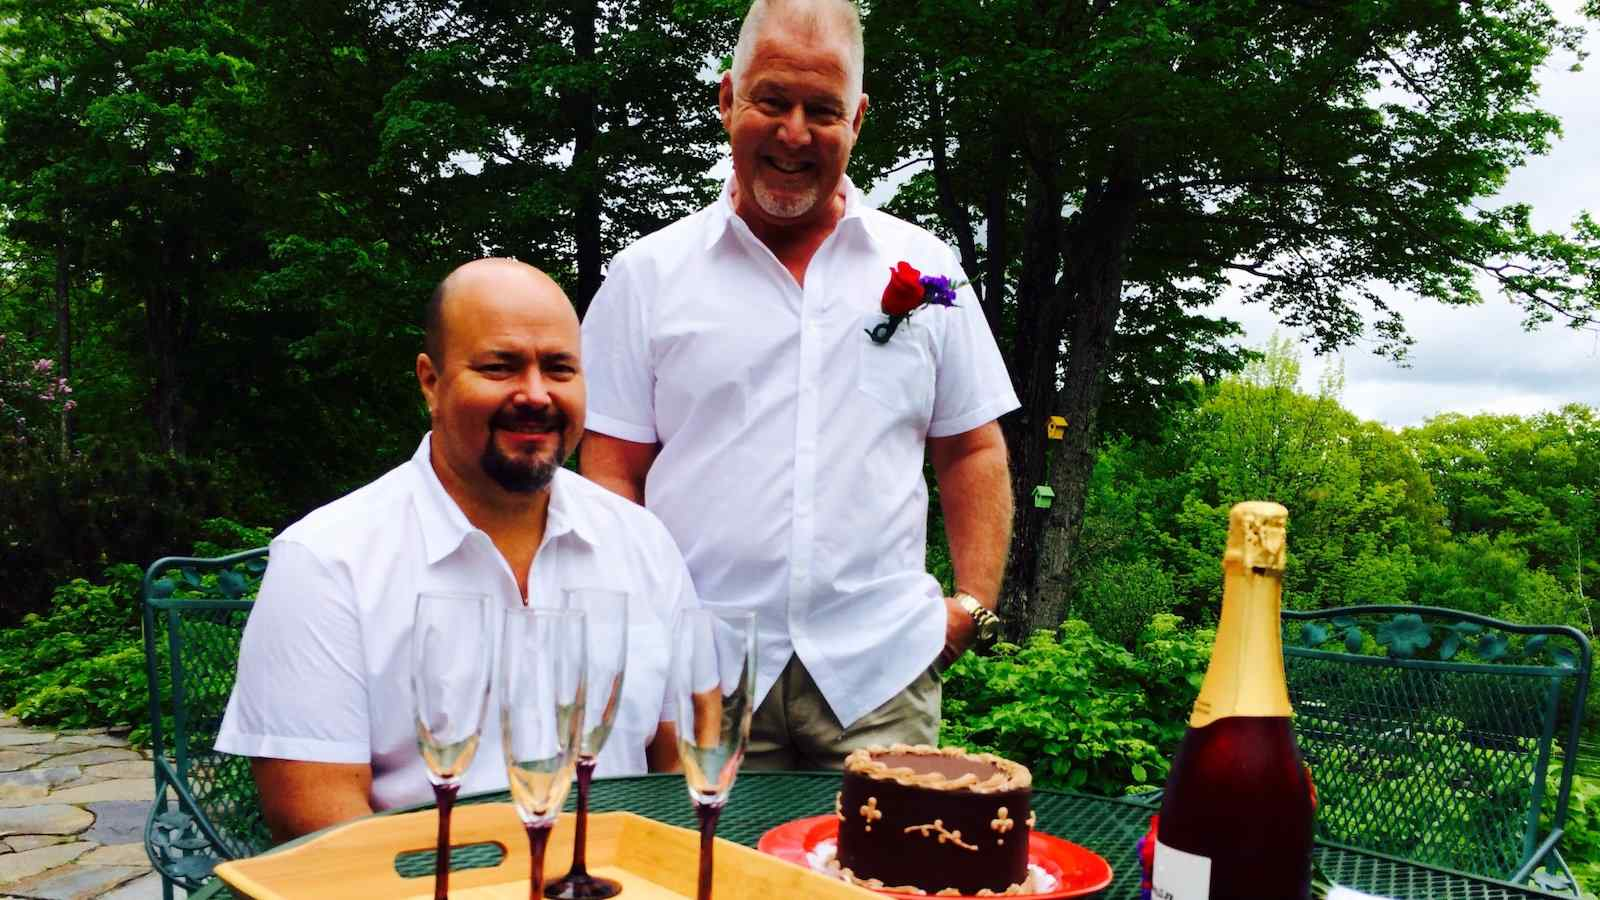 Frog Meadow Farm is a stunning gay B&B in Vermont with lots of wonderful activities for gay men to enjoy